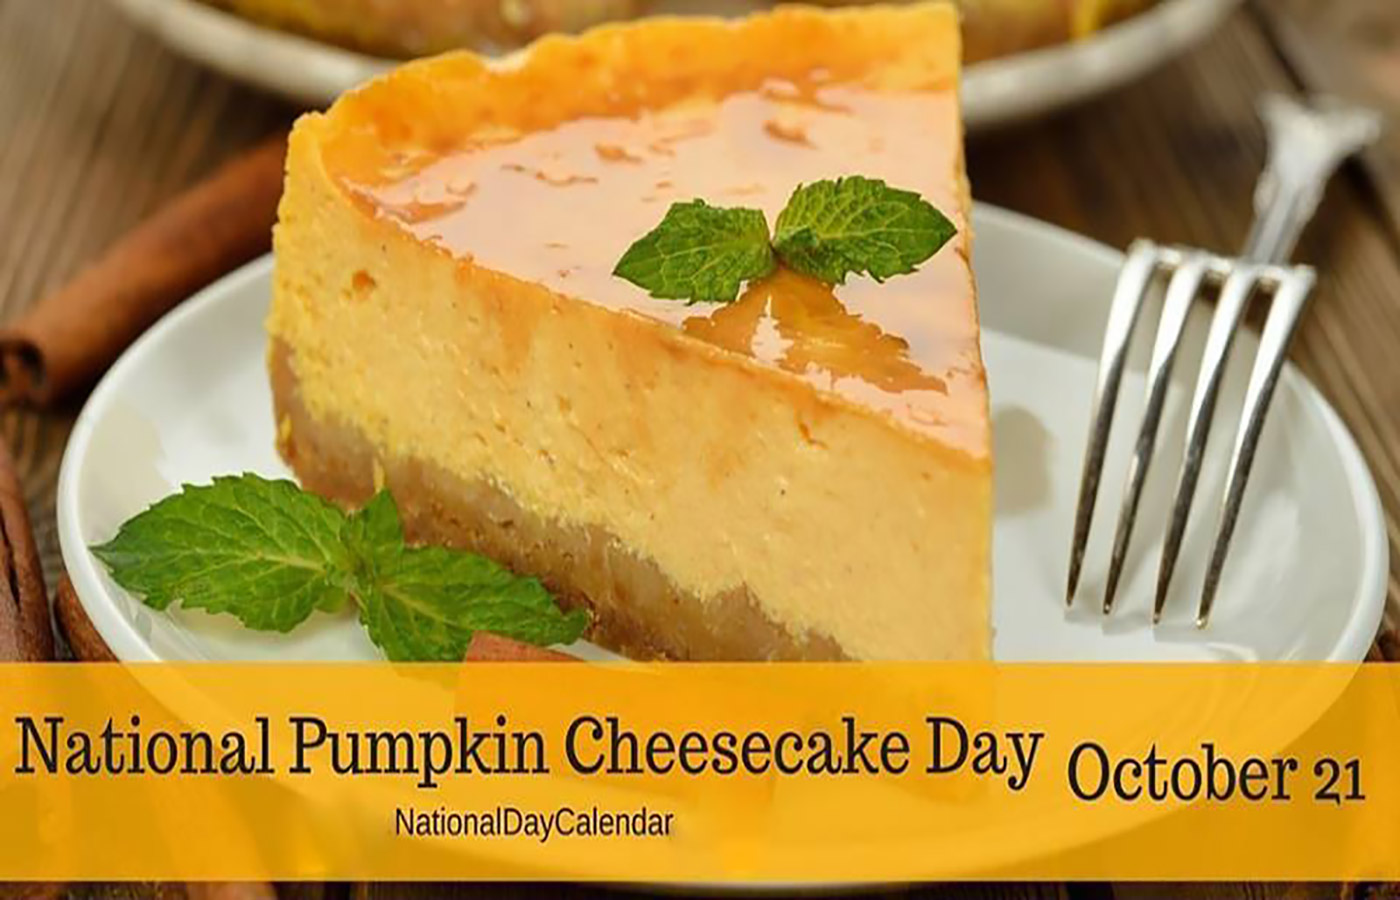 No-Bake Pumpkin Cheesecake to Celebrate the Day